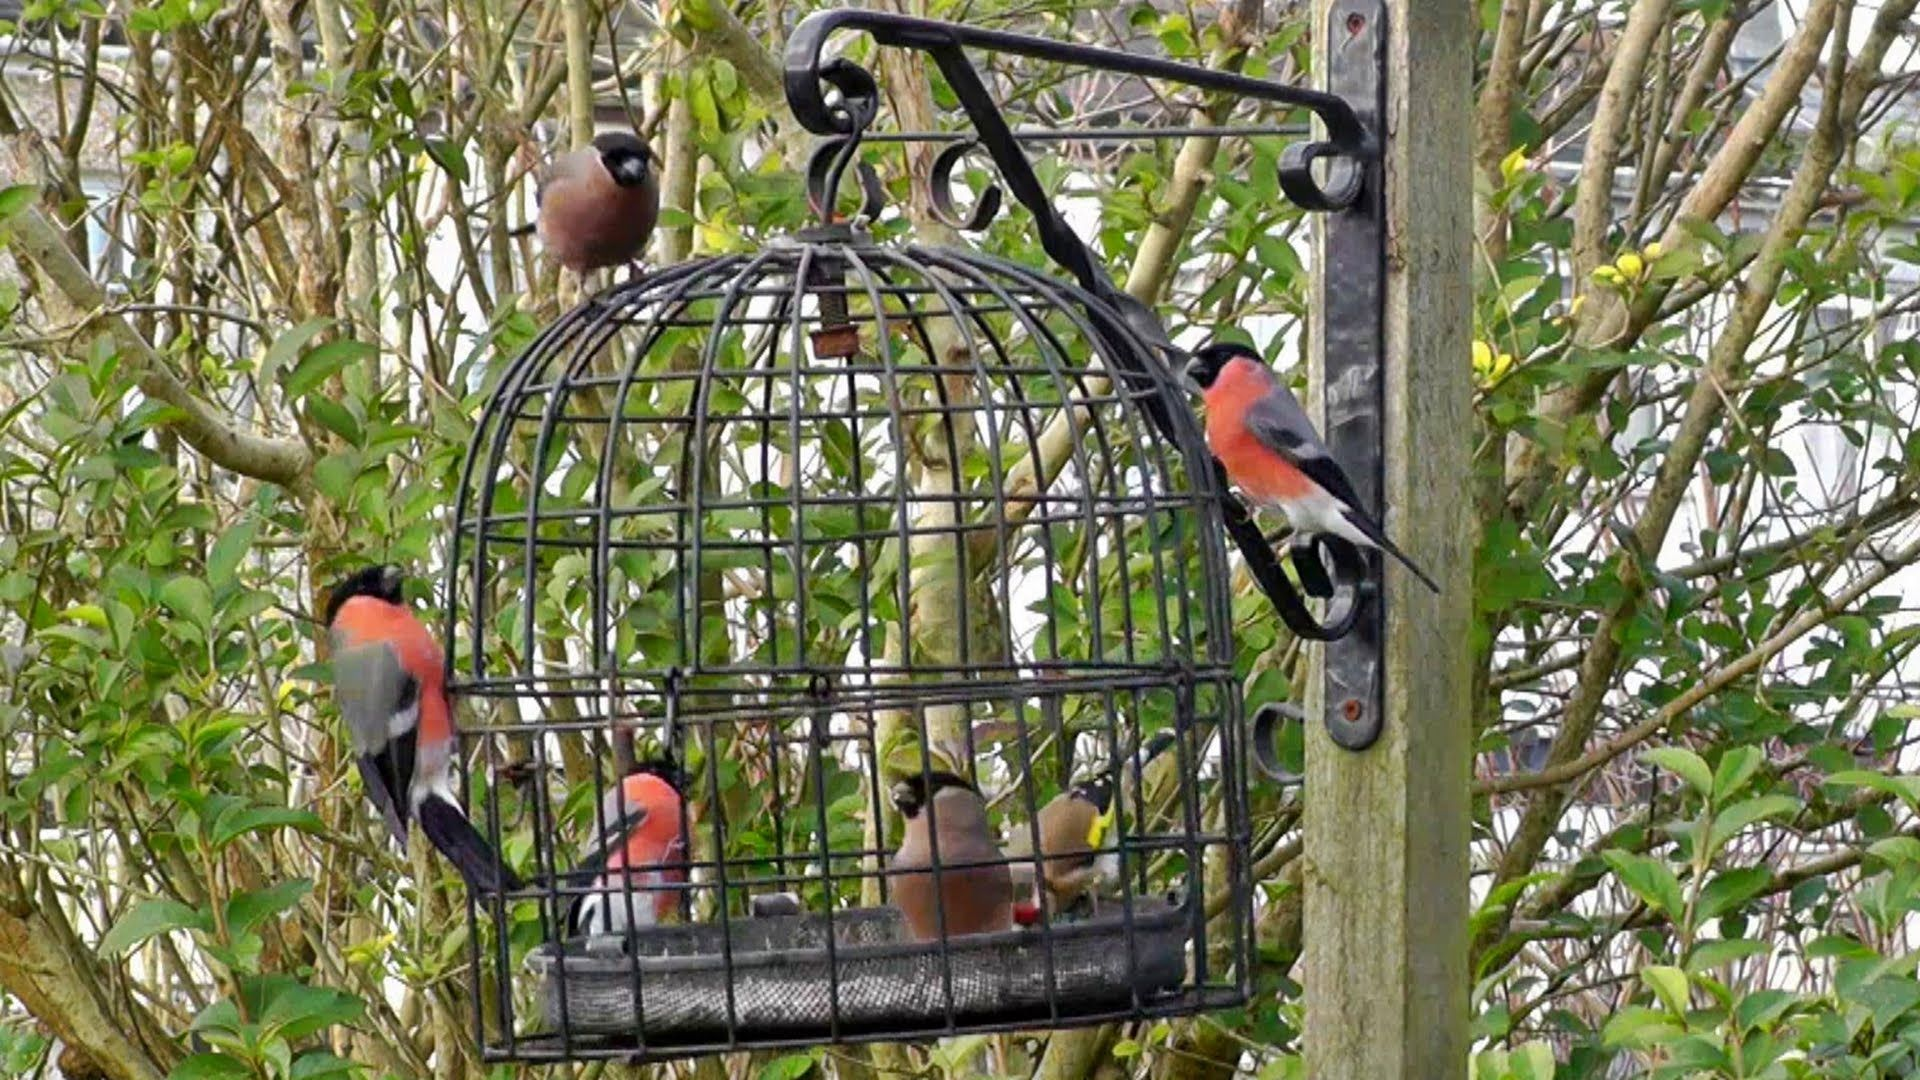 The Bird Cage Anti Squirrel And Pigeon Proof Bird Feeder Caged Bird Feeders Squirrel Proof Bird Feeders Hanging Bird Feeders